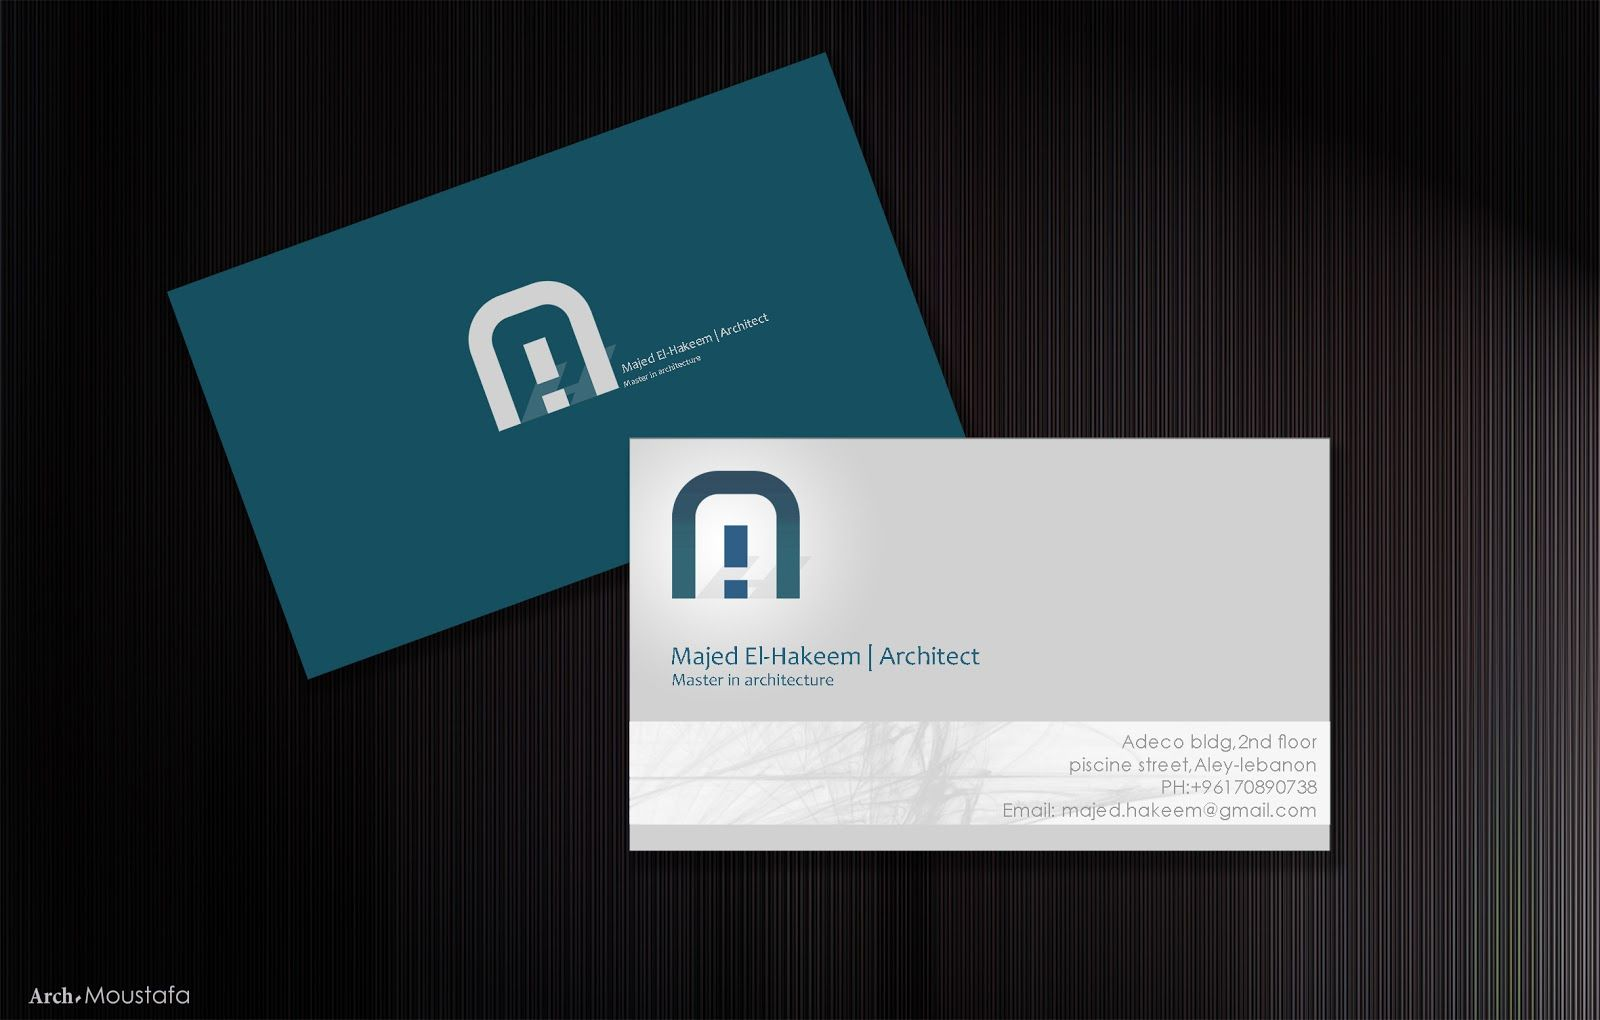 Architect Majed El-hakeem business card & logo |by Blu phi graphics ...